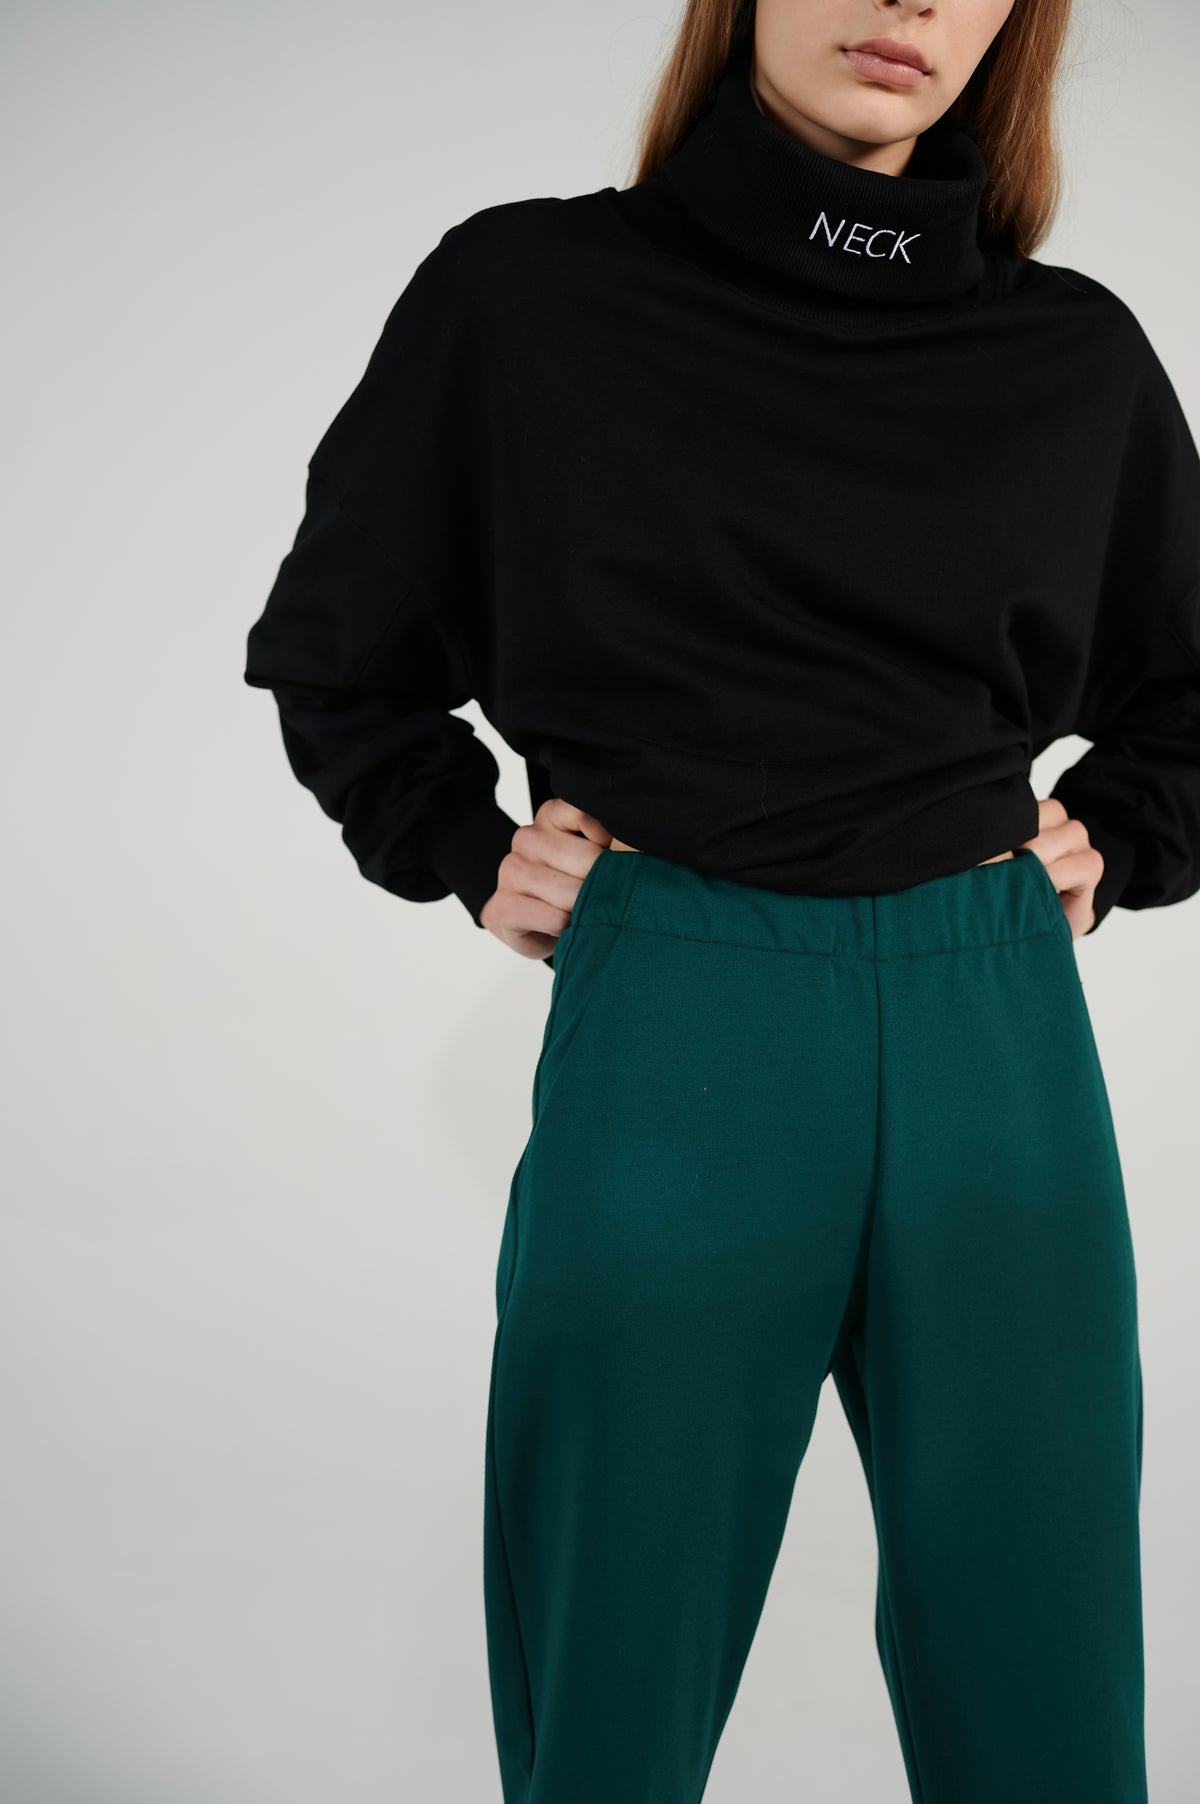 le-slap-green-lounge-pants-with-pocket-high-rise-waist-lookbook.jpg